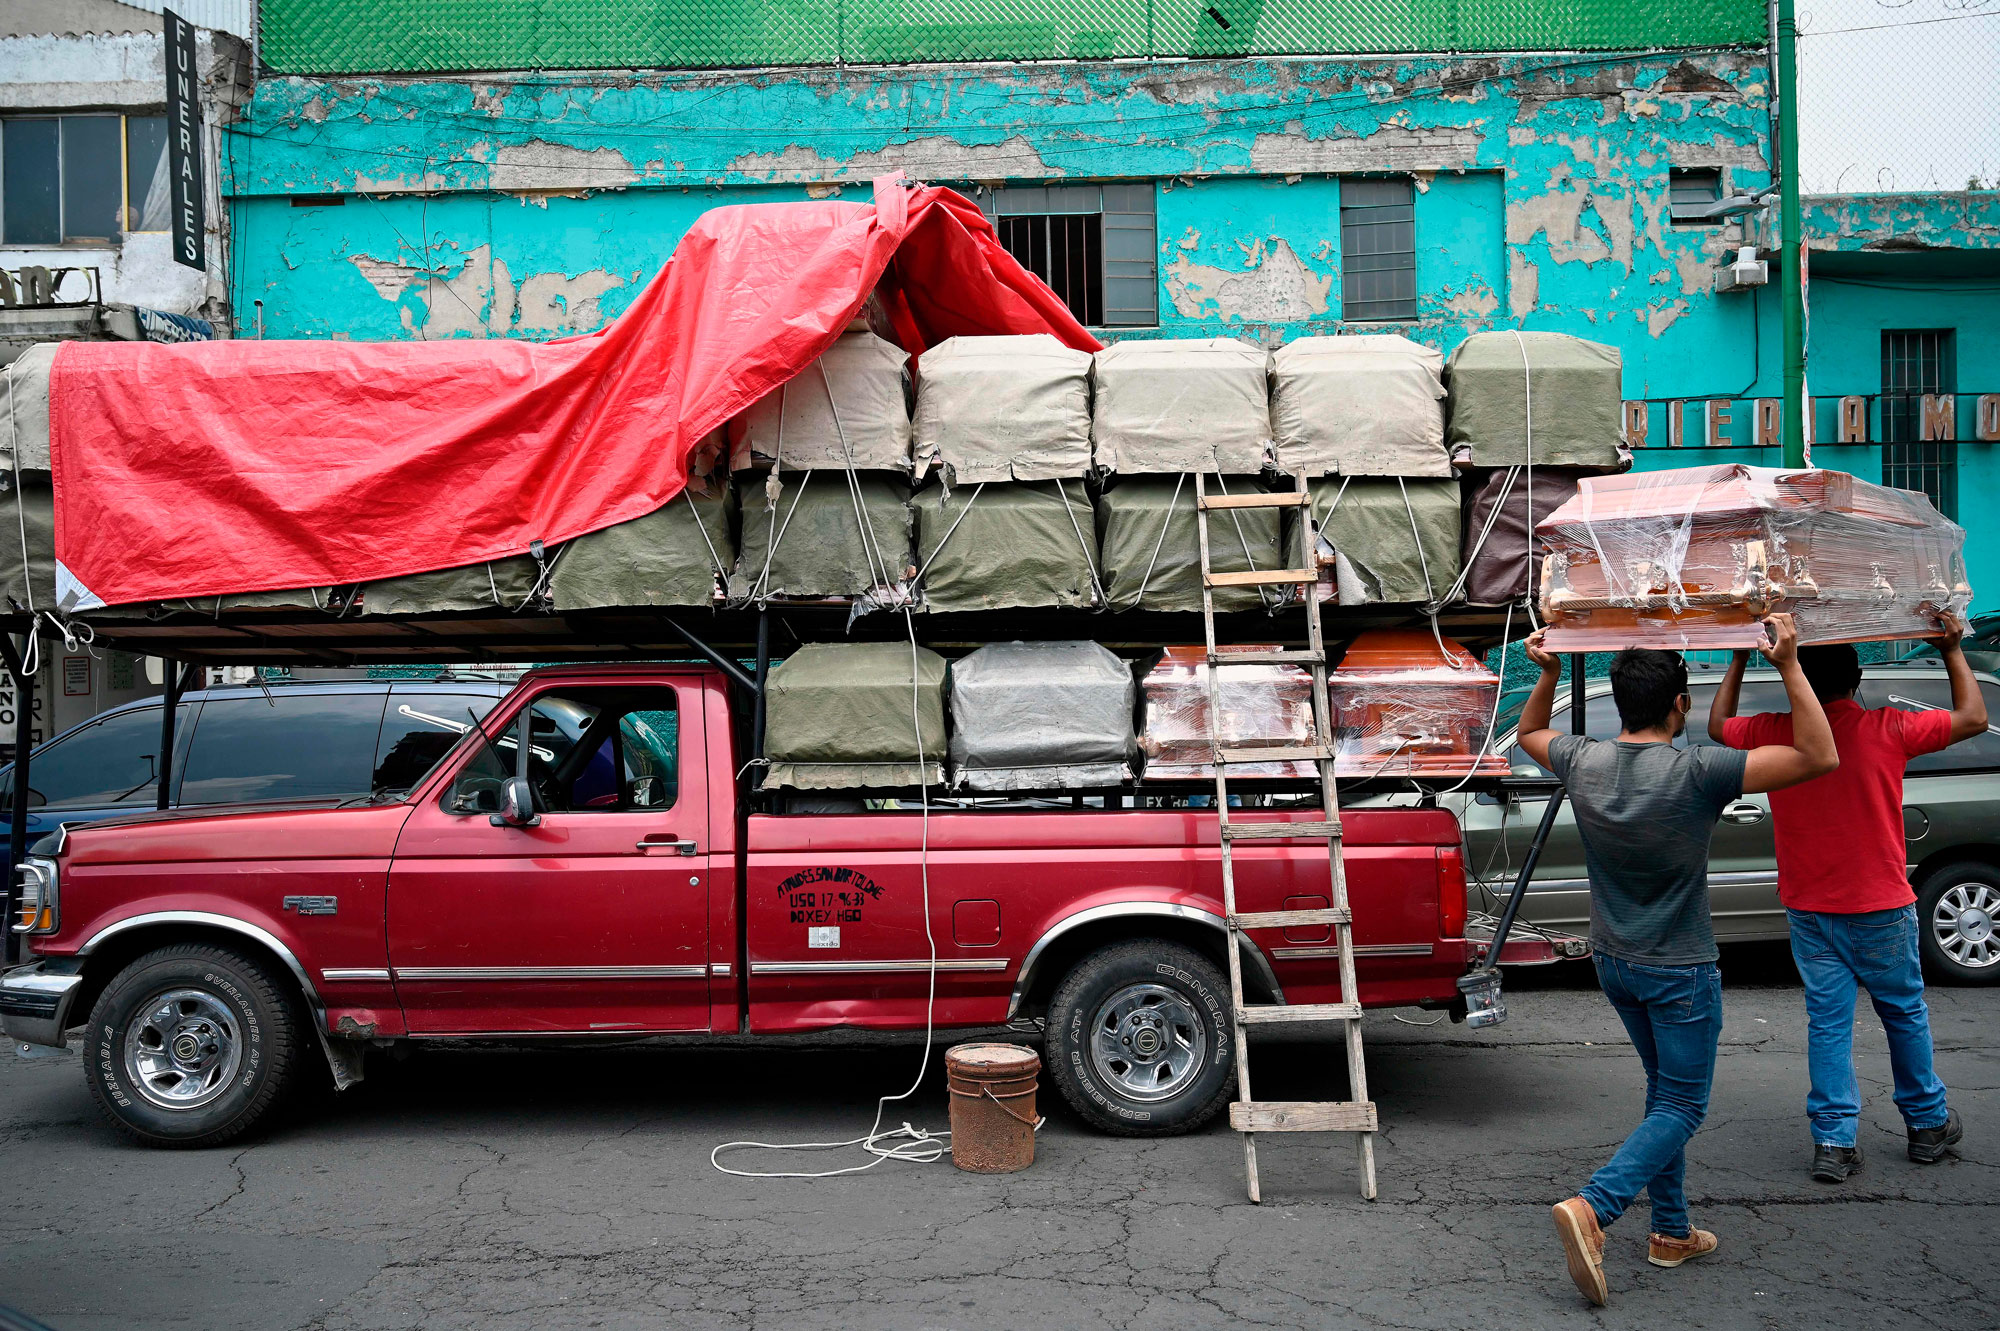 Workers unload coffins from a truck outside a funeral home in Mexico City on August 20.